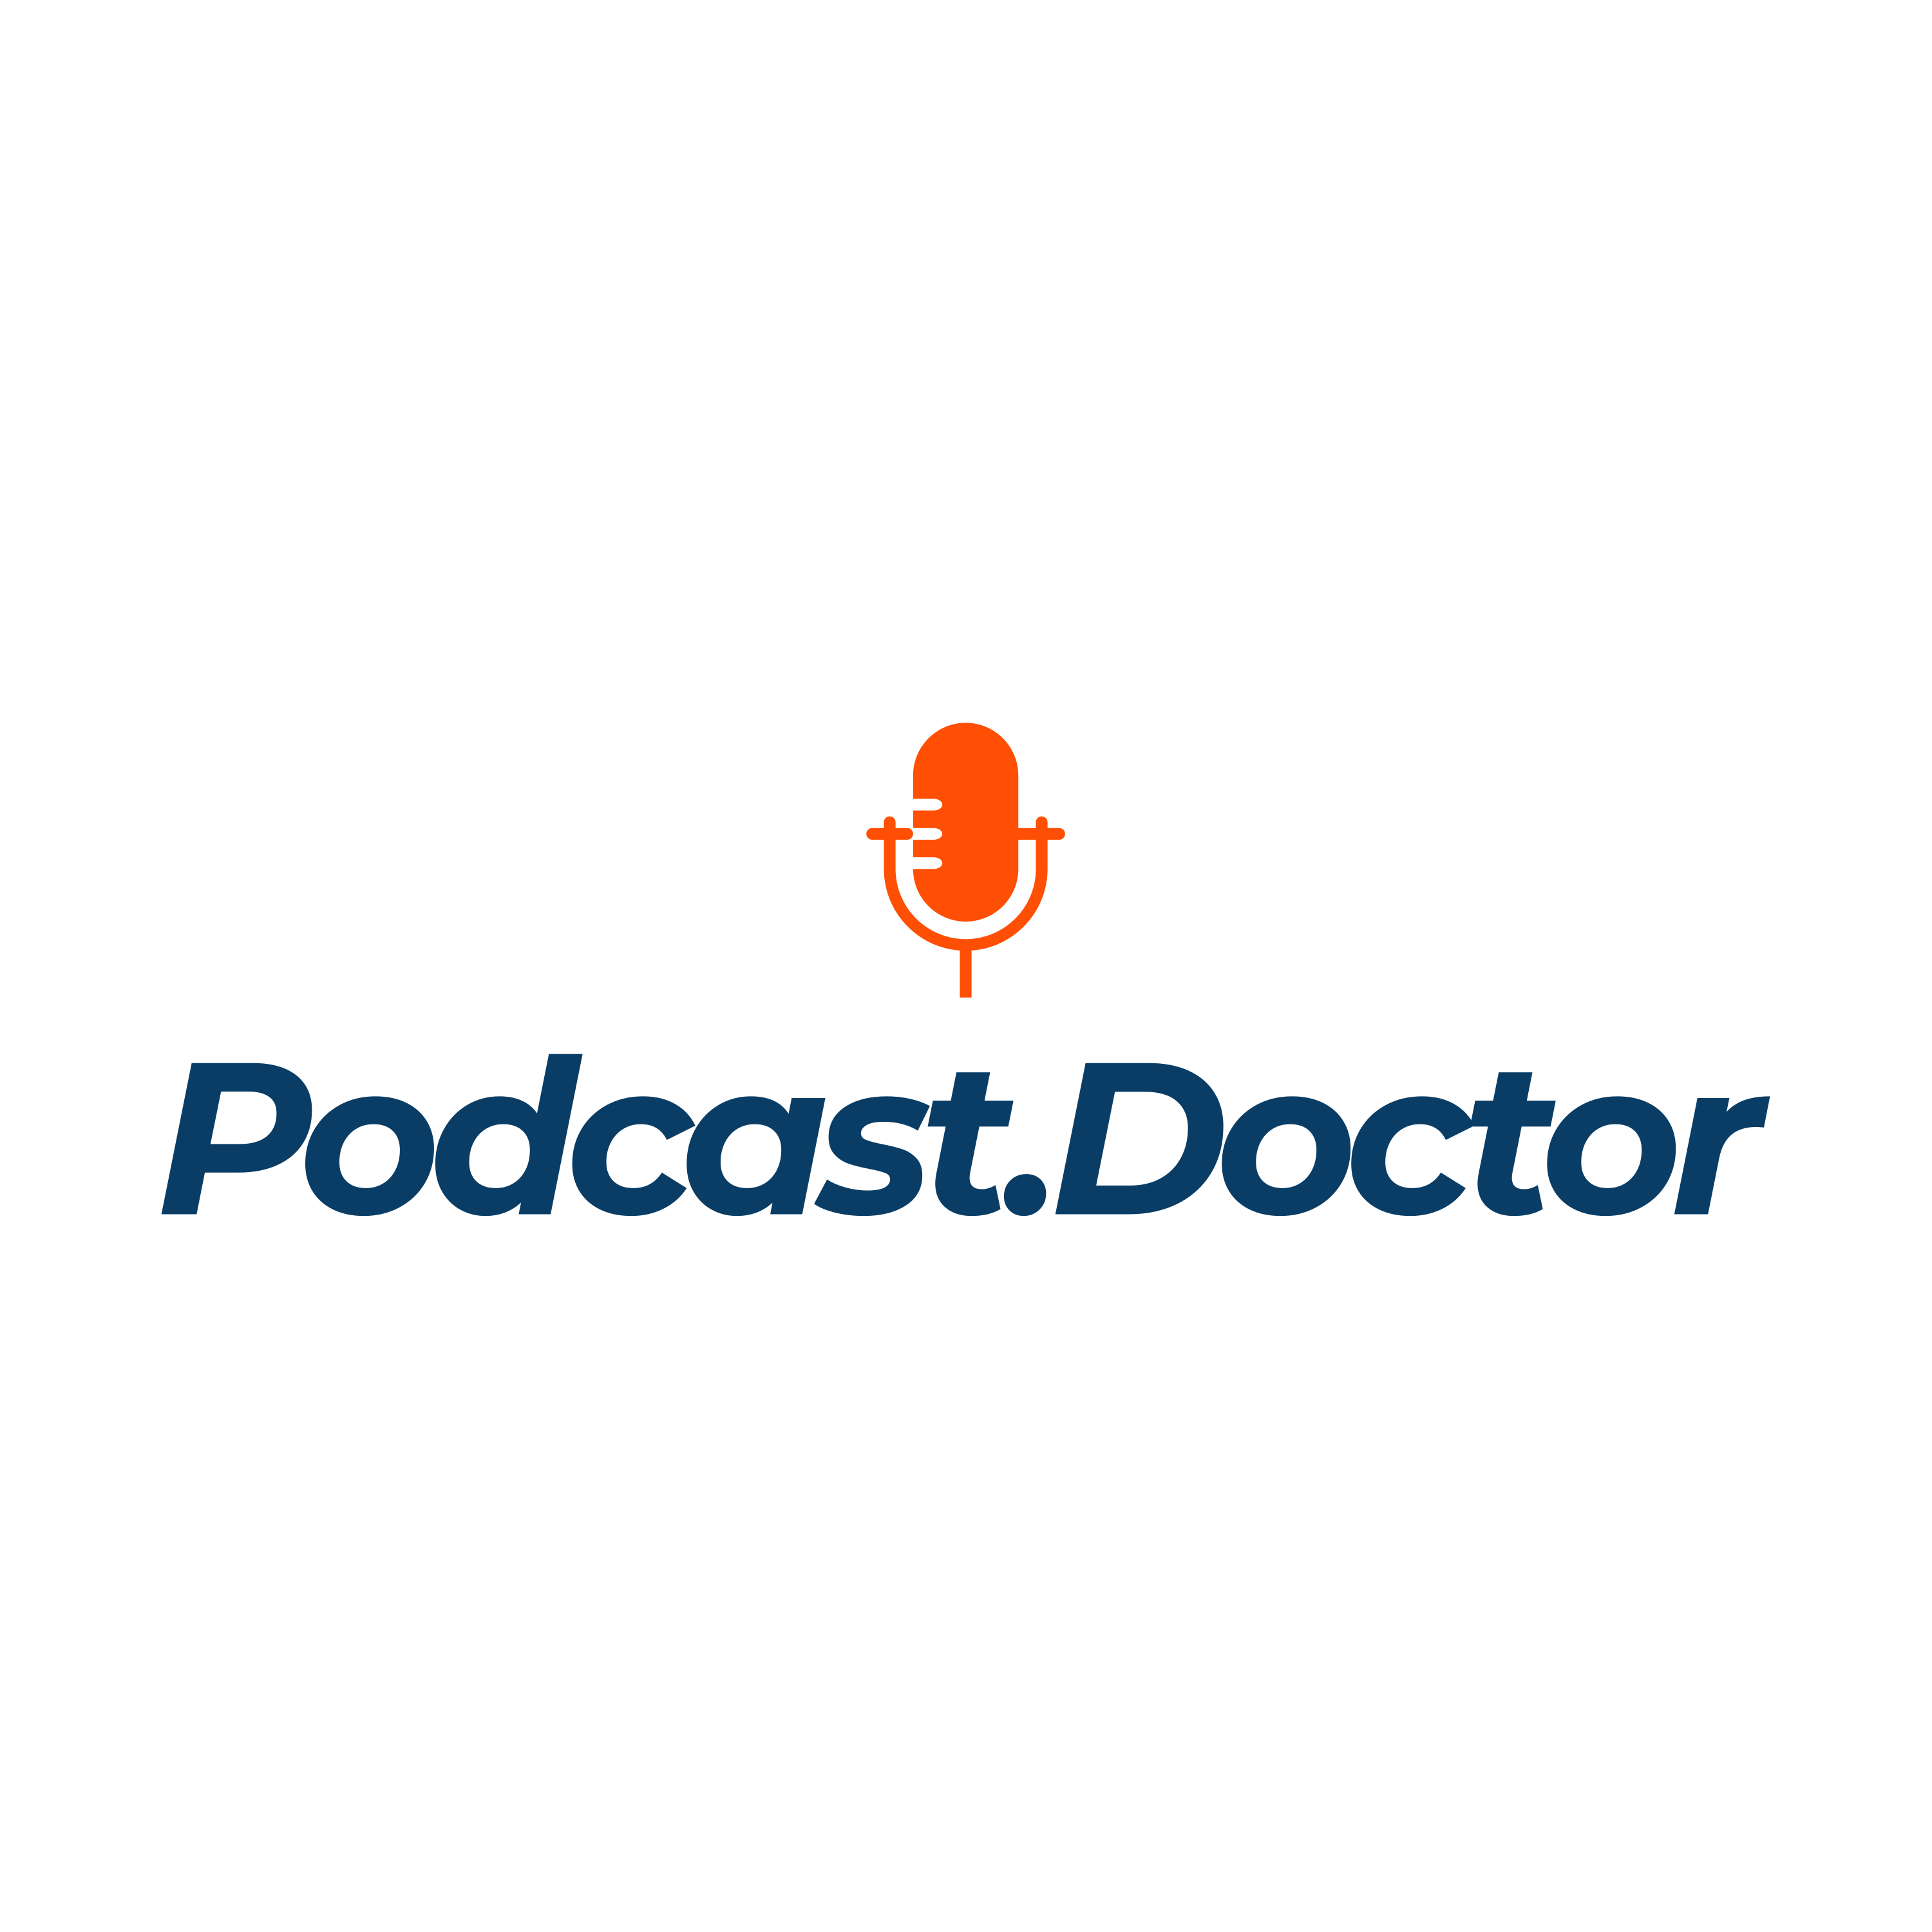 Podcast.Doctor